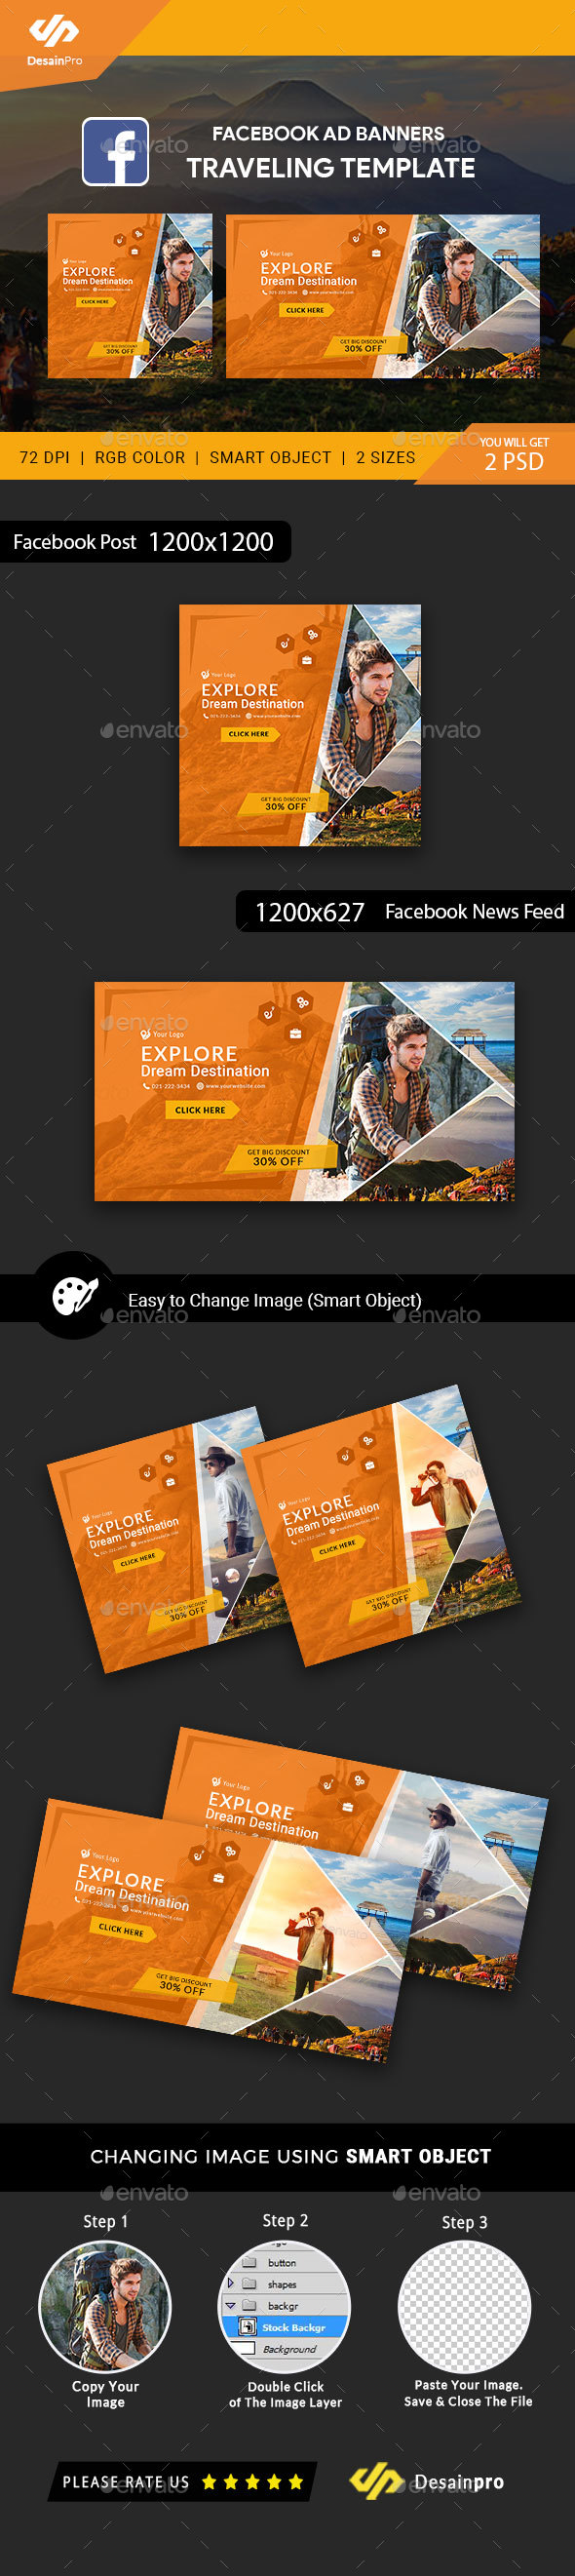 travel agent template graphics designs templates